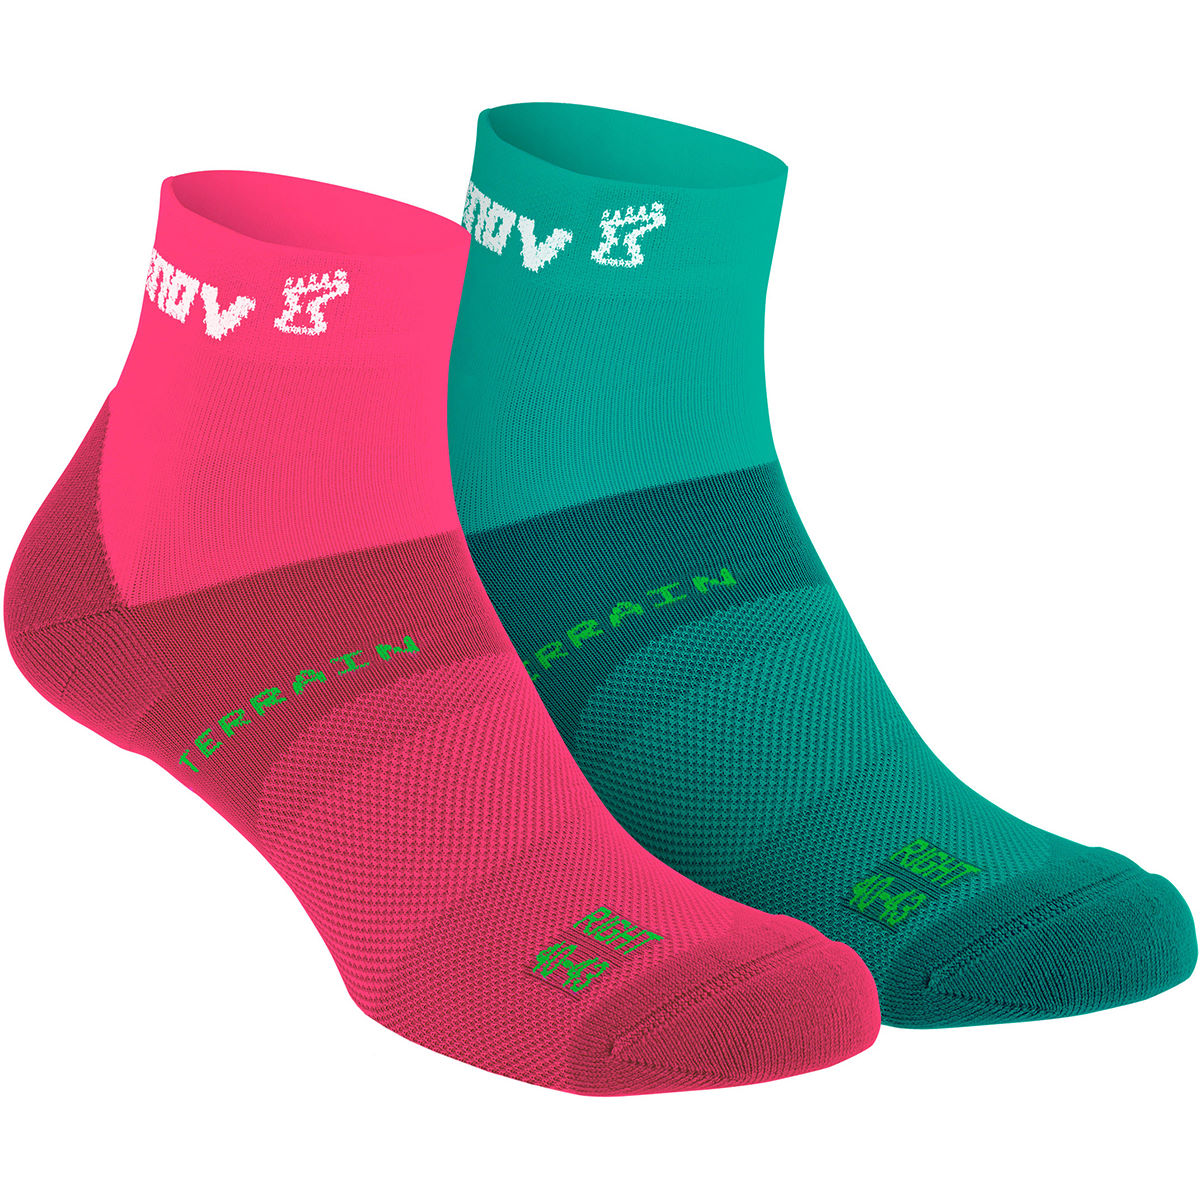 Chaussettes Inov-8 All Terrain (mi-hautes, PE17) - M Teal/Pink Chaussettes de running